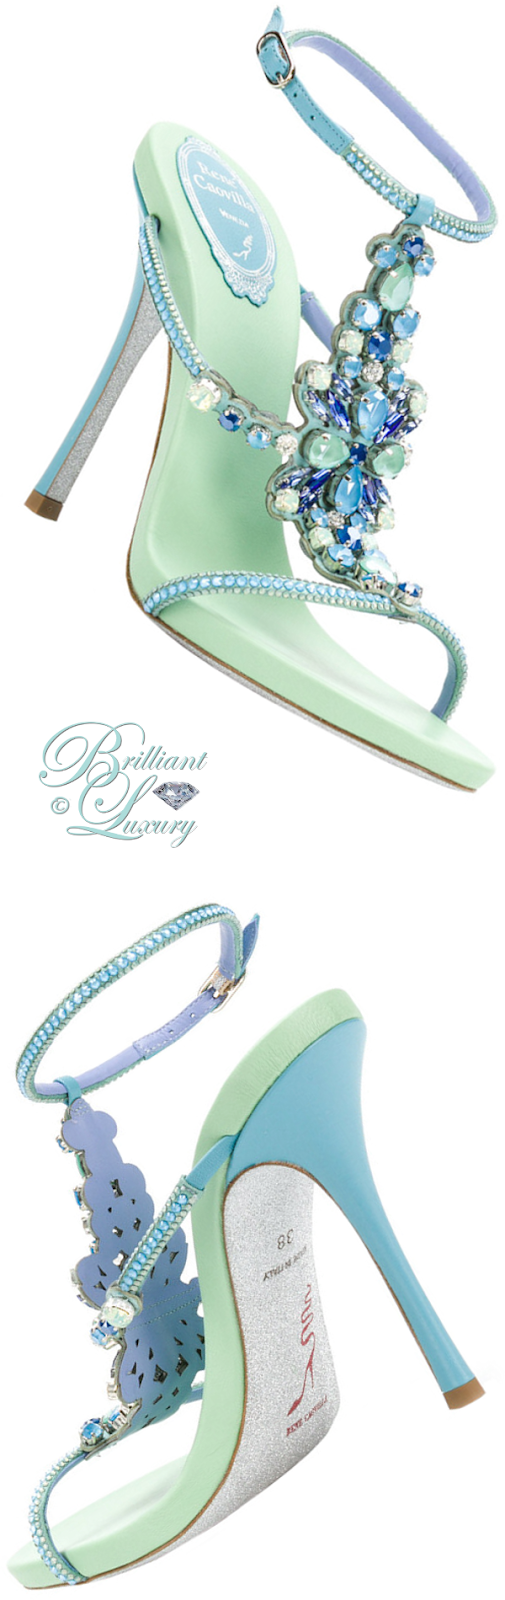 Brilliant Luxury ♦ René Caovilla beweled strappy high heel sandals in turquoise